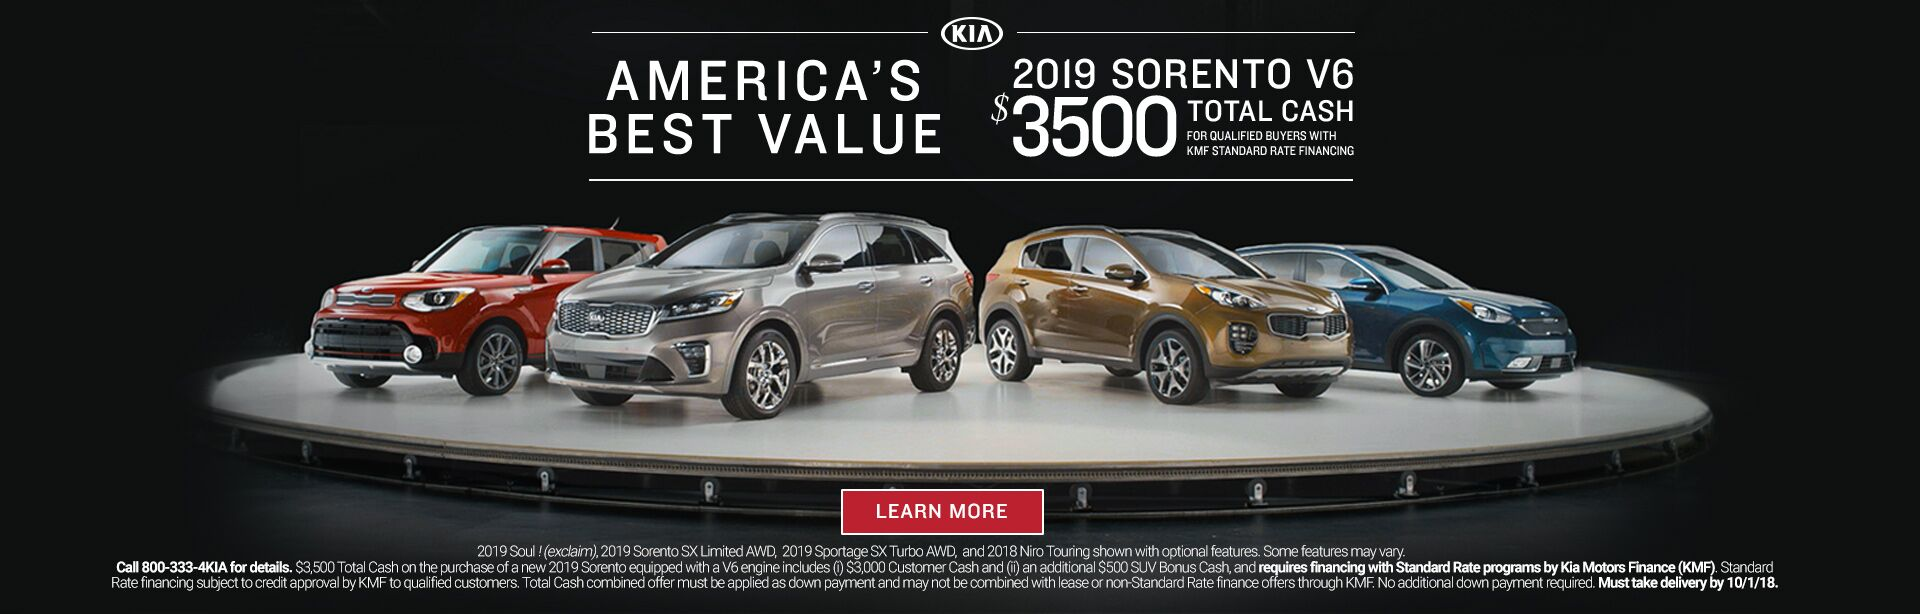 America's Best Value 2019 Sorento Moritz Kia Hurst (Mid-cities)